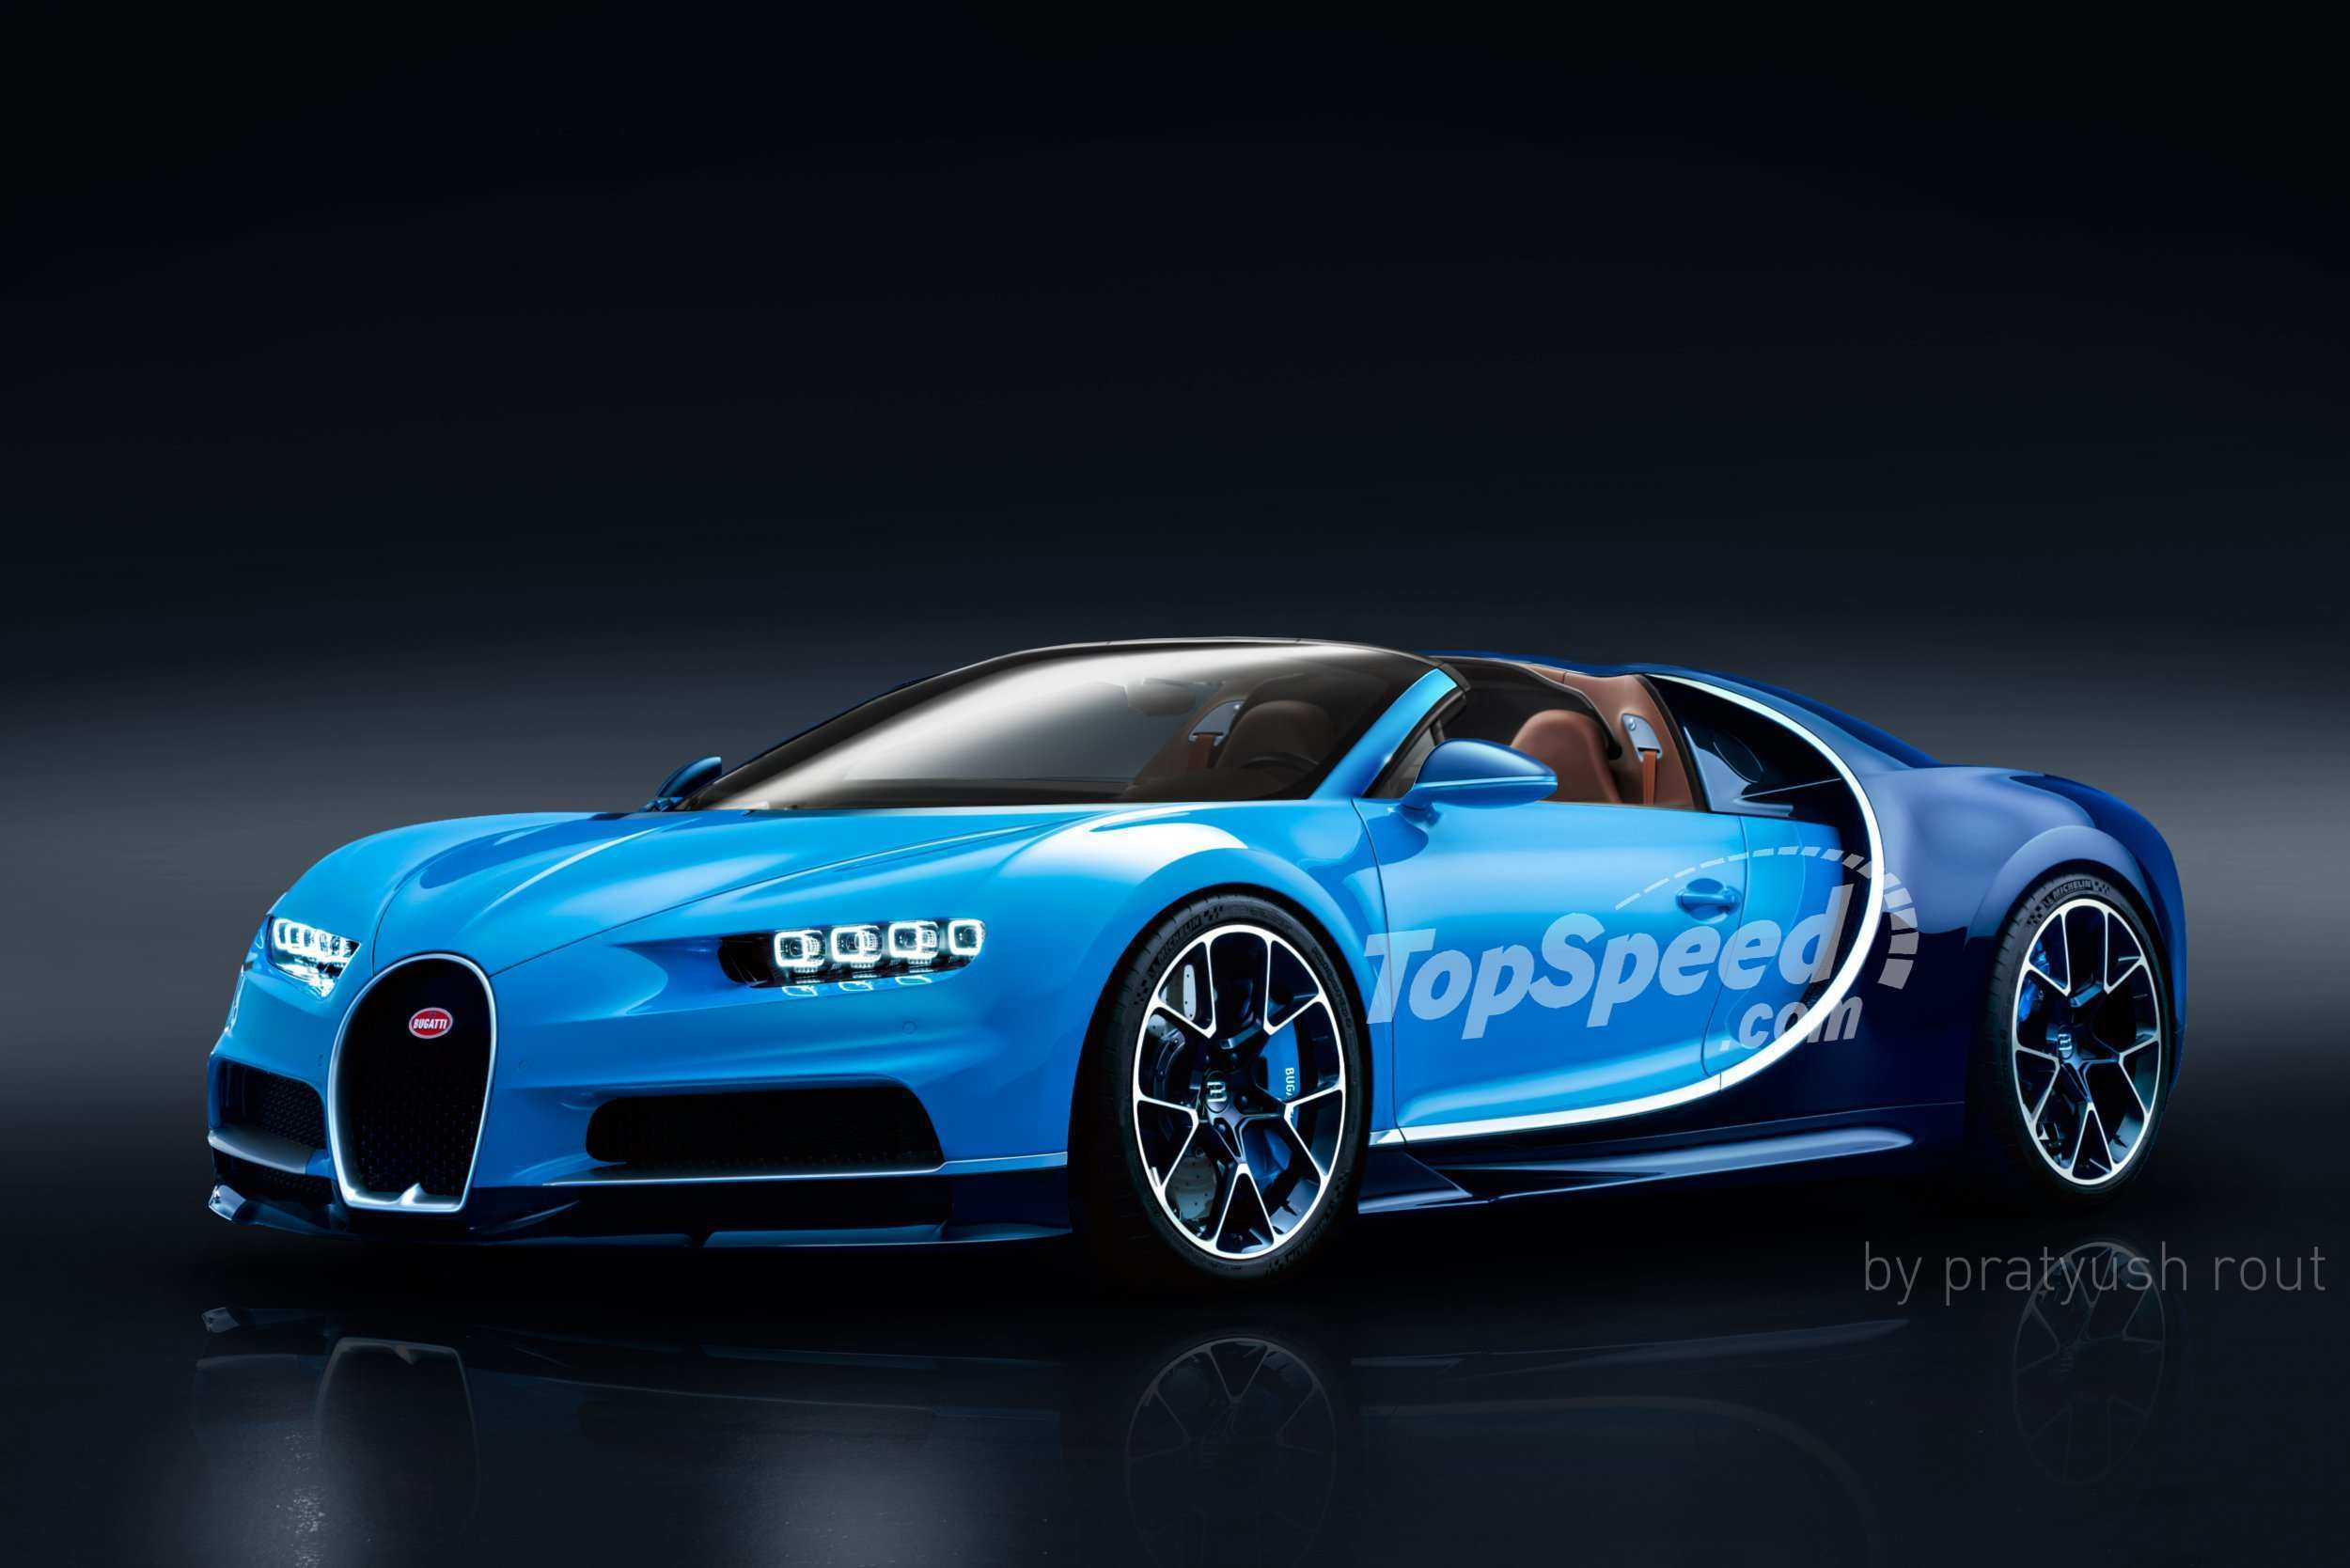 77 New 2019 Bugatti Veyron Top Speed Price and Review with 2019 Bugatti Veyron Top Speed